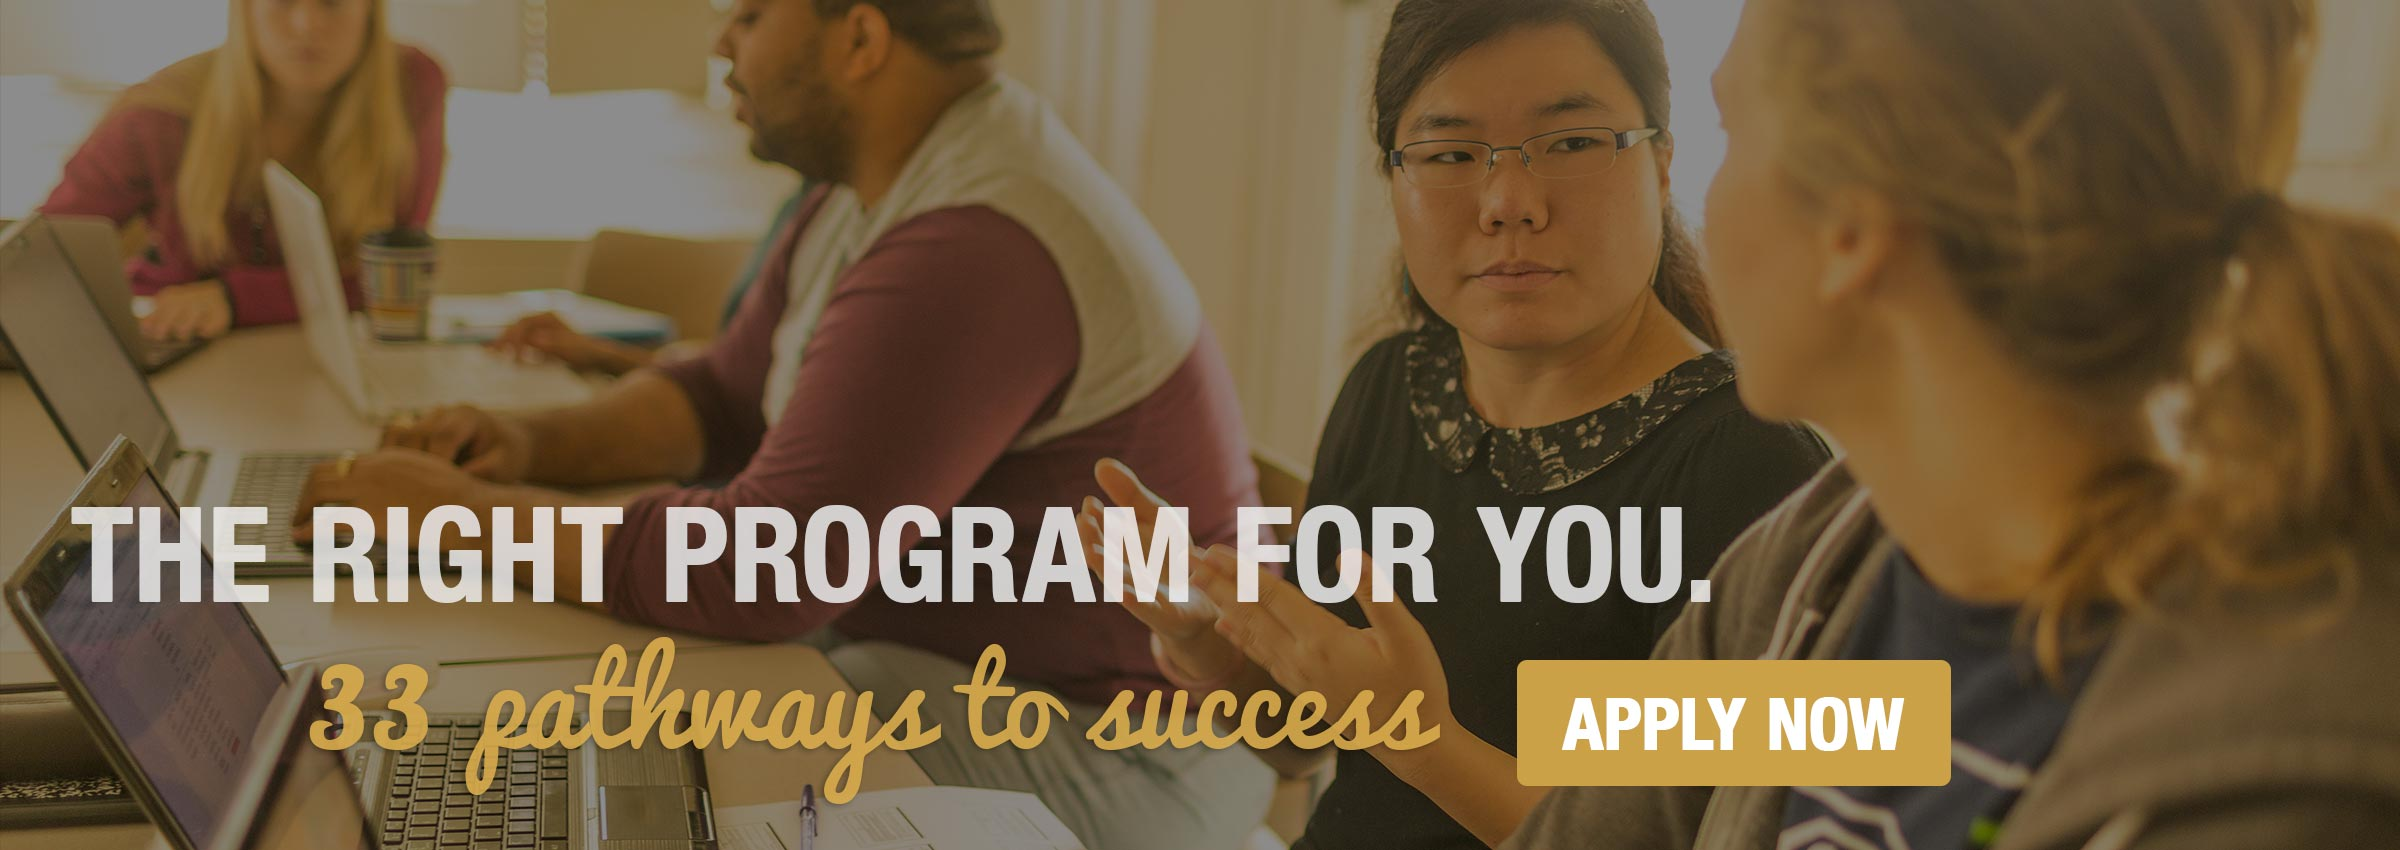 The Right Program for You. 24 pathways to success.